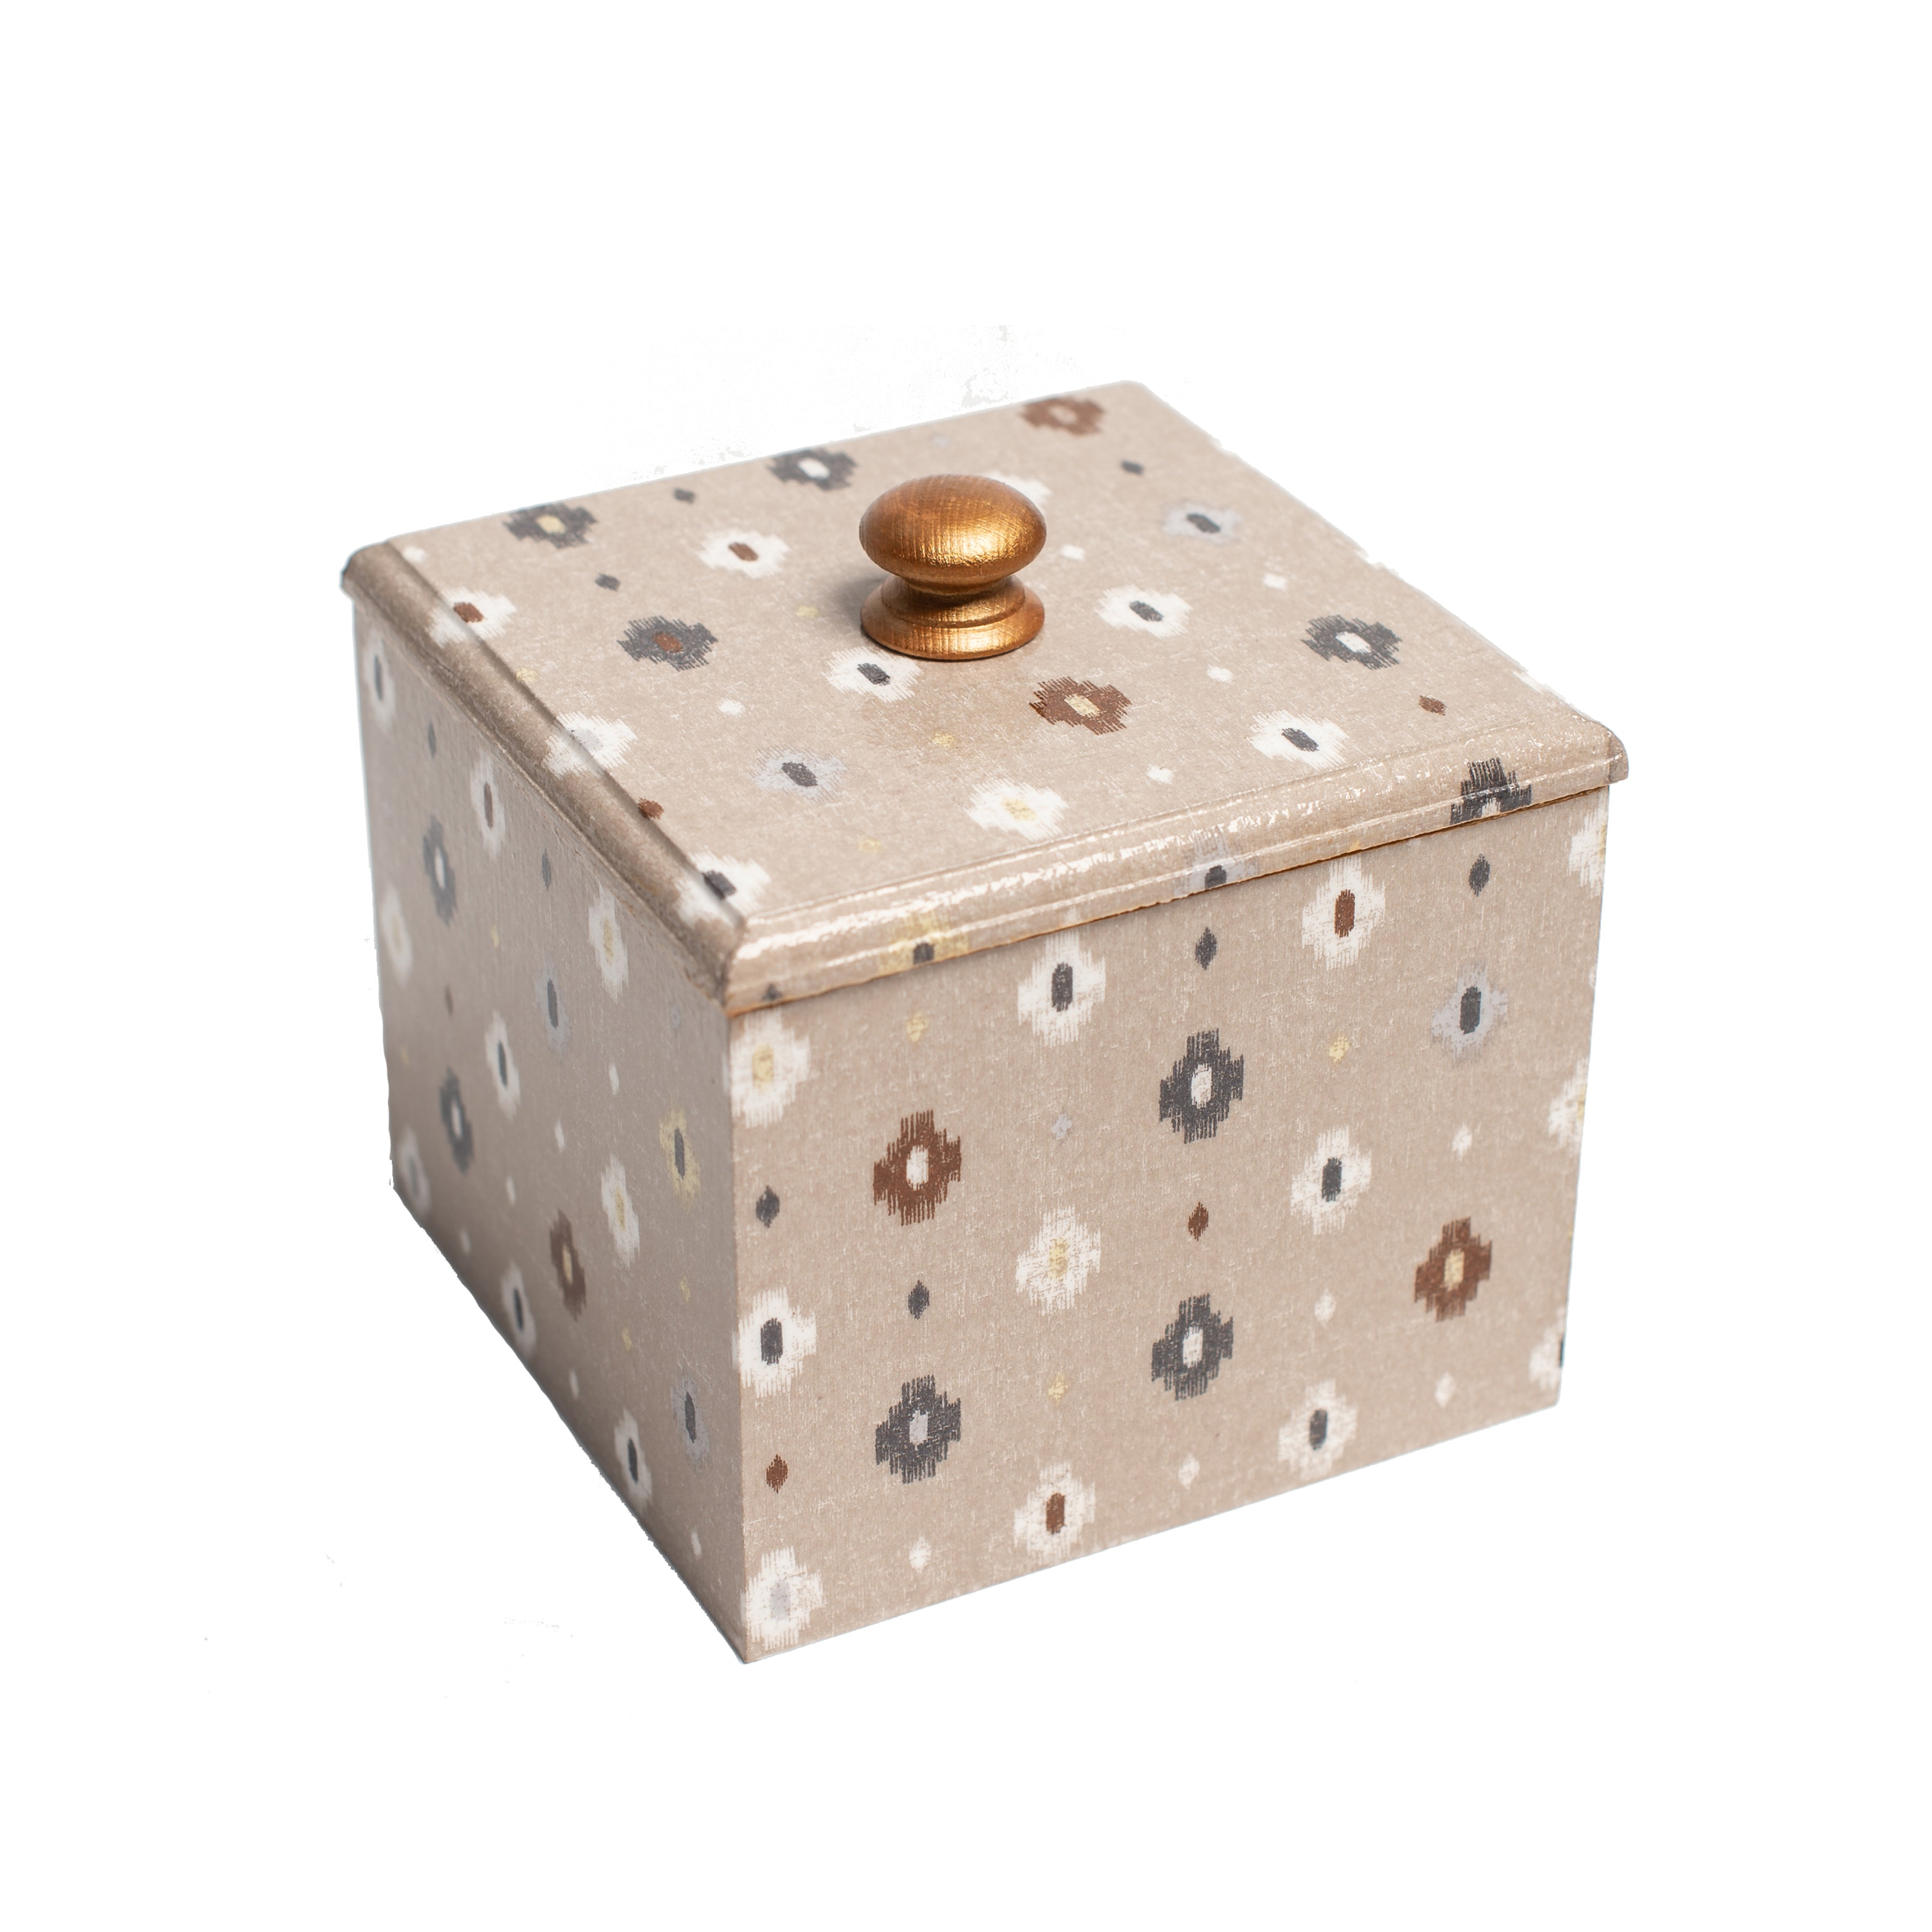 Aztec Design wooden Trinket Box